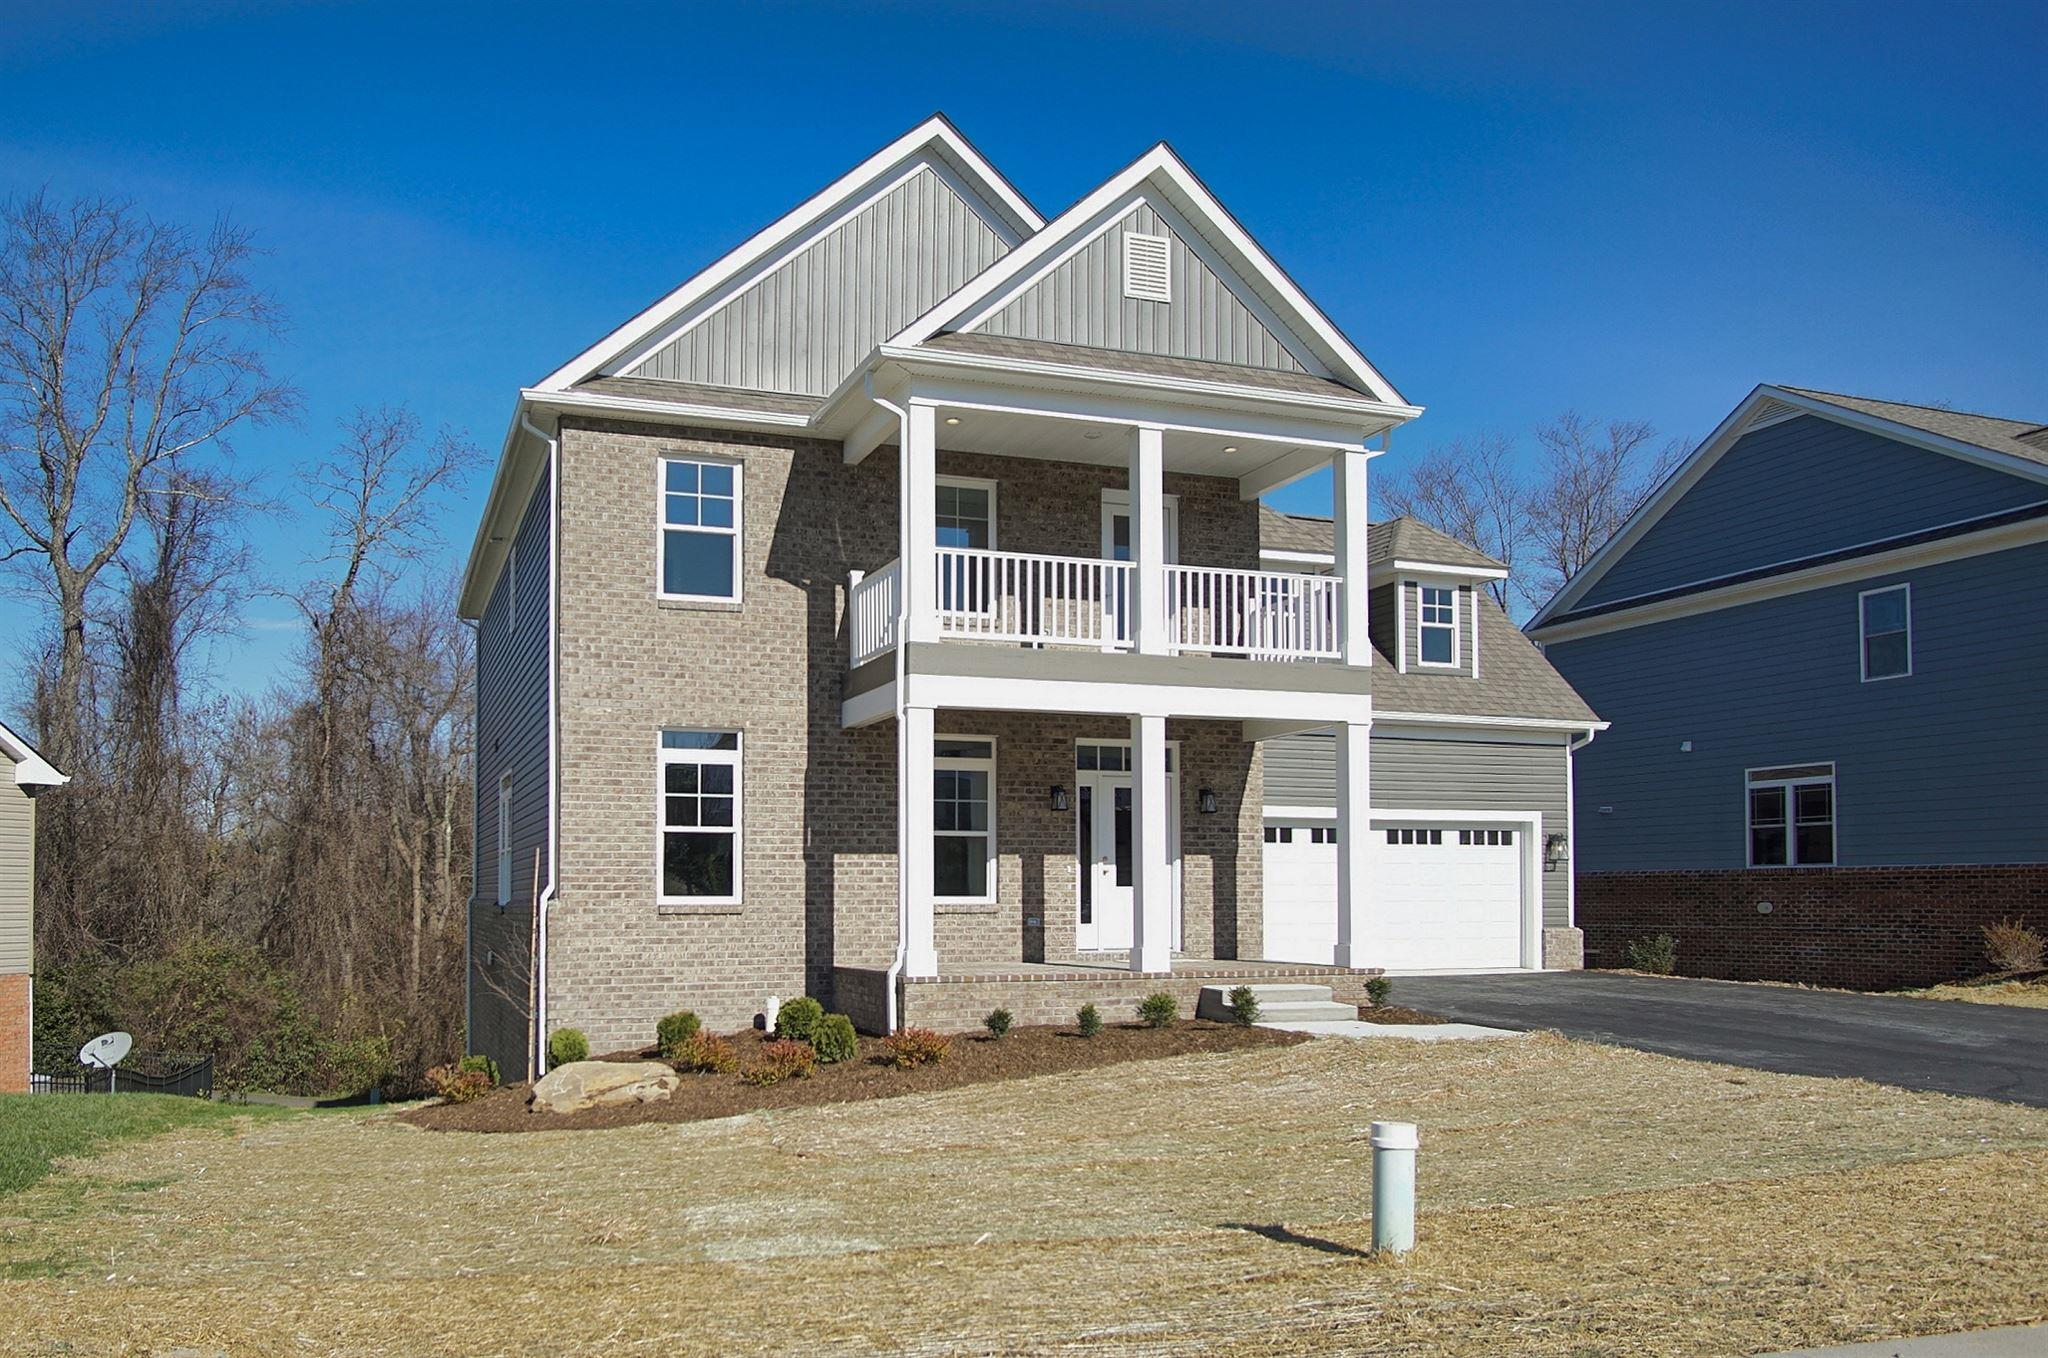 Brand New 4 Bedroom 3.5 bath within walking distance to downtown Blacksburg! Open floor plan with 2 Master Suites, expansive 1500 sq ft, unfinished basement, pre-plumbed for full bathroom. Large outdoor living, double decker front porch and rear deck. Hardwoods, tile, granite countertops and luxury bathrooms. Home in last stages of completion.